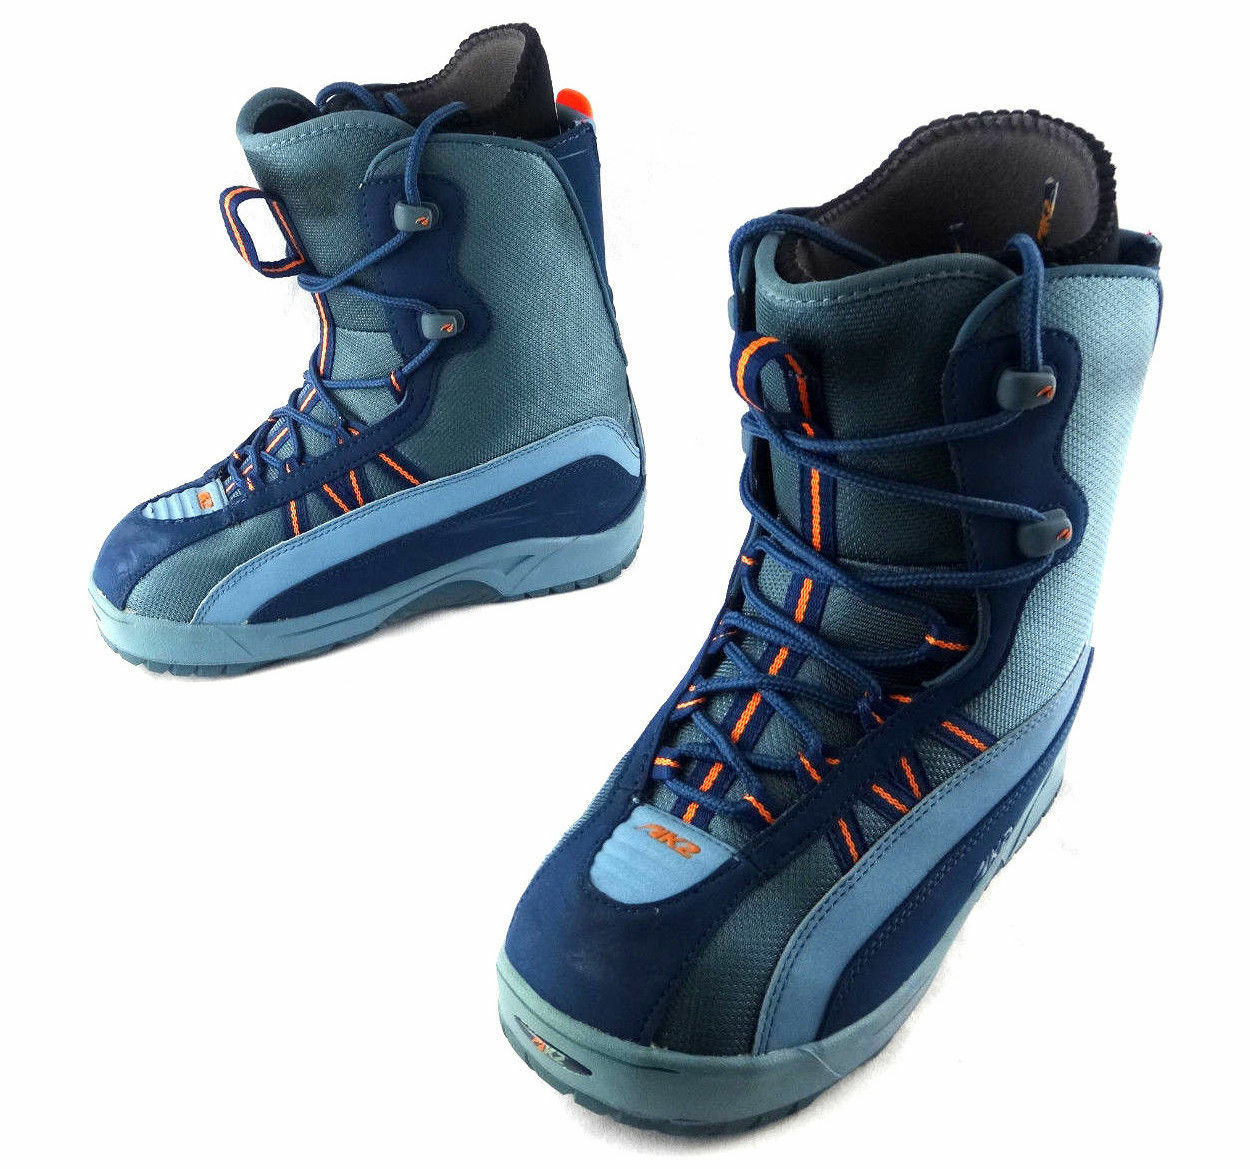 K2 Striker Women's Snowboard Boots color Turquoise Pre-Owned USA Women's Size 9